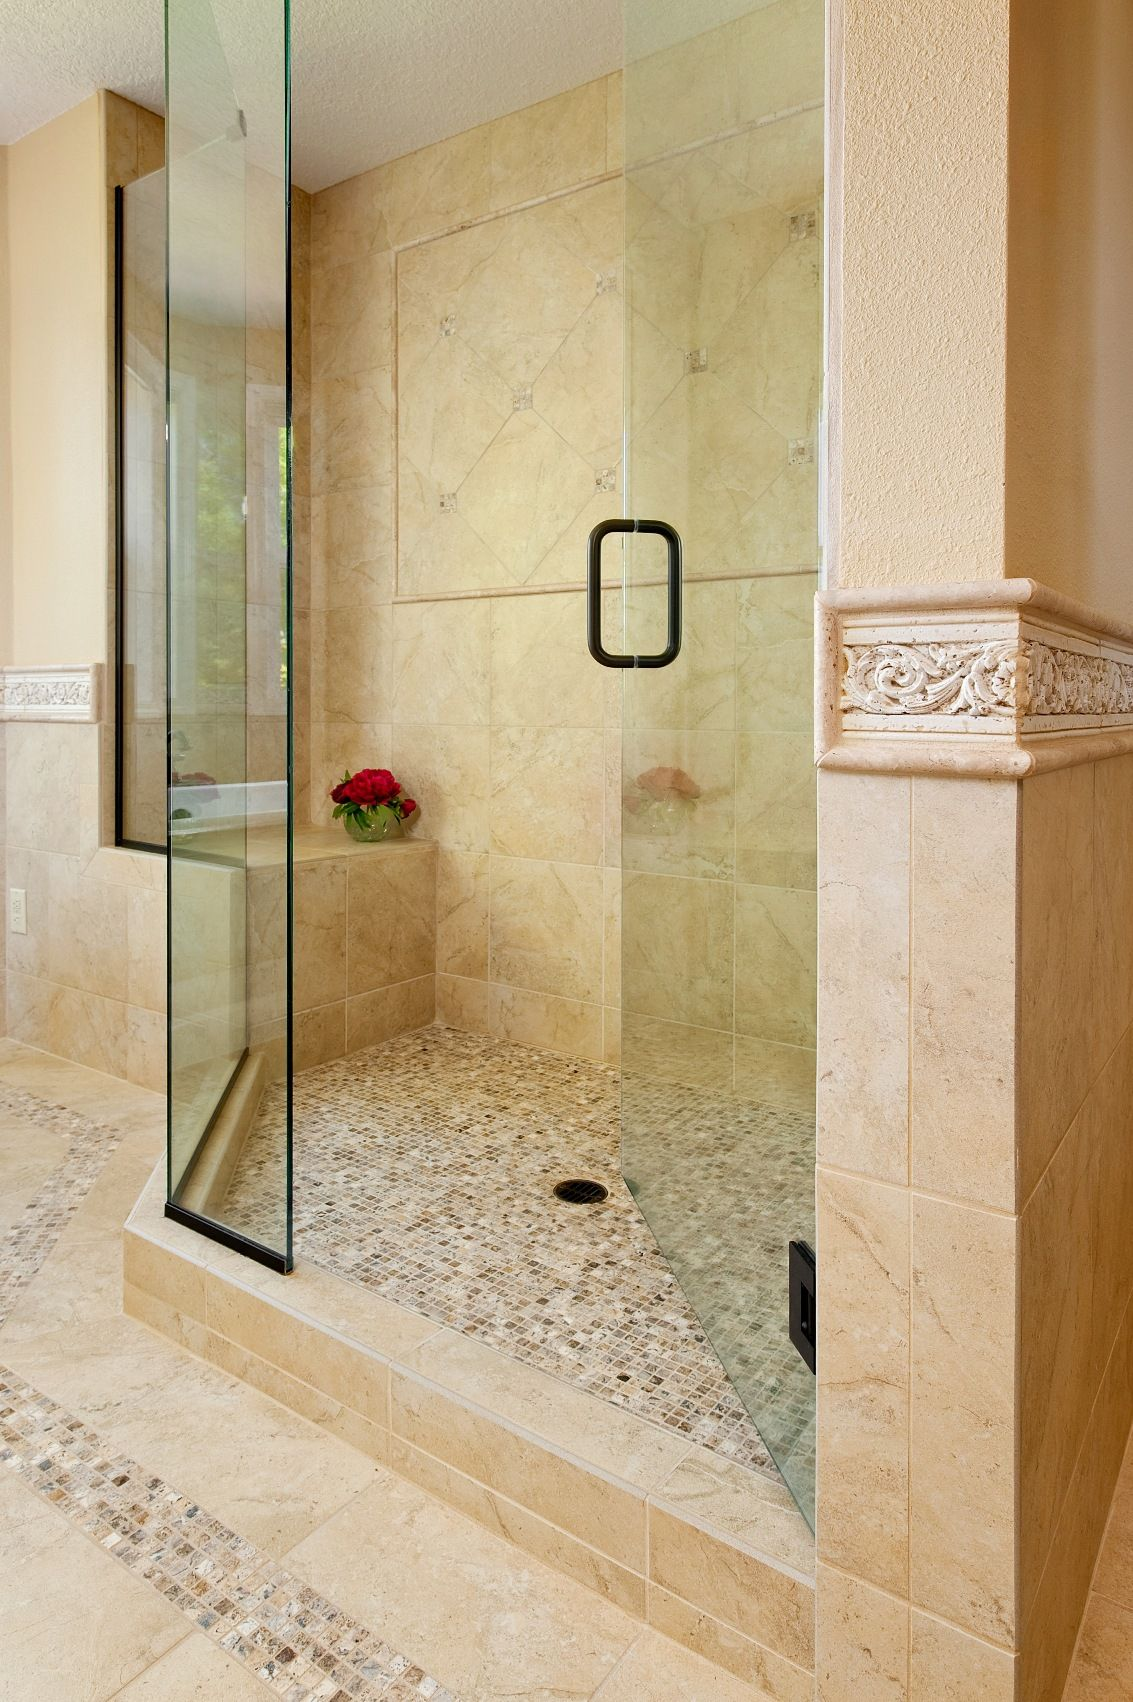 100+ Small Bathroom Ideas with Shower - Interior Paint Color Schemes ...